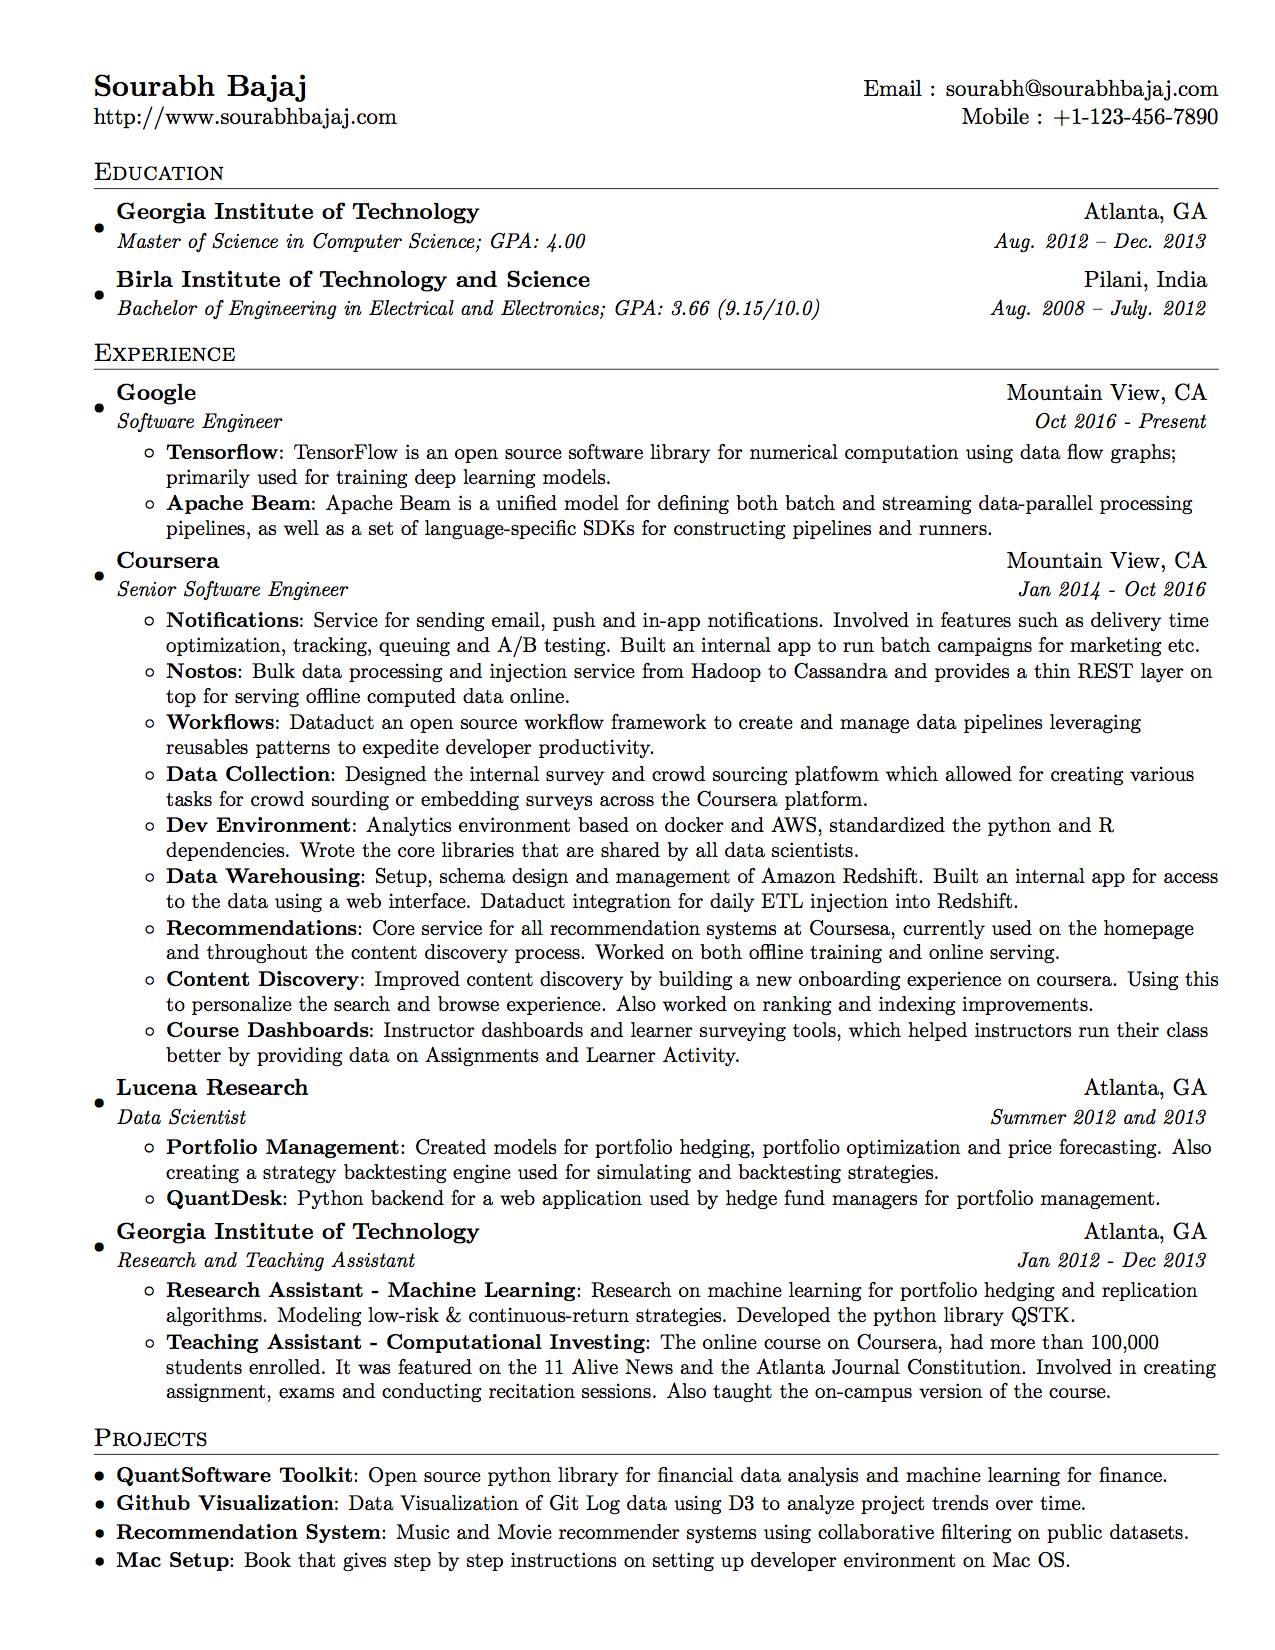 google how to write a resumes